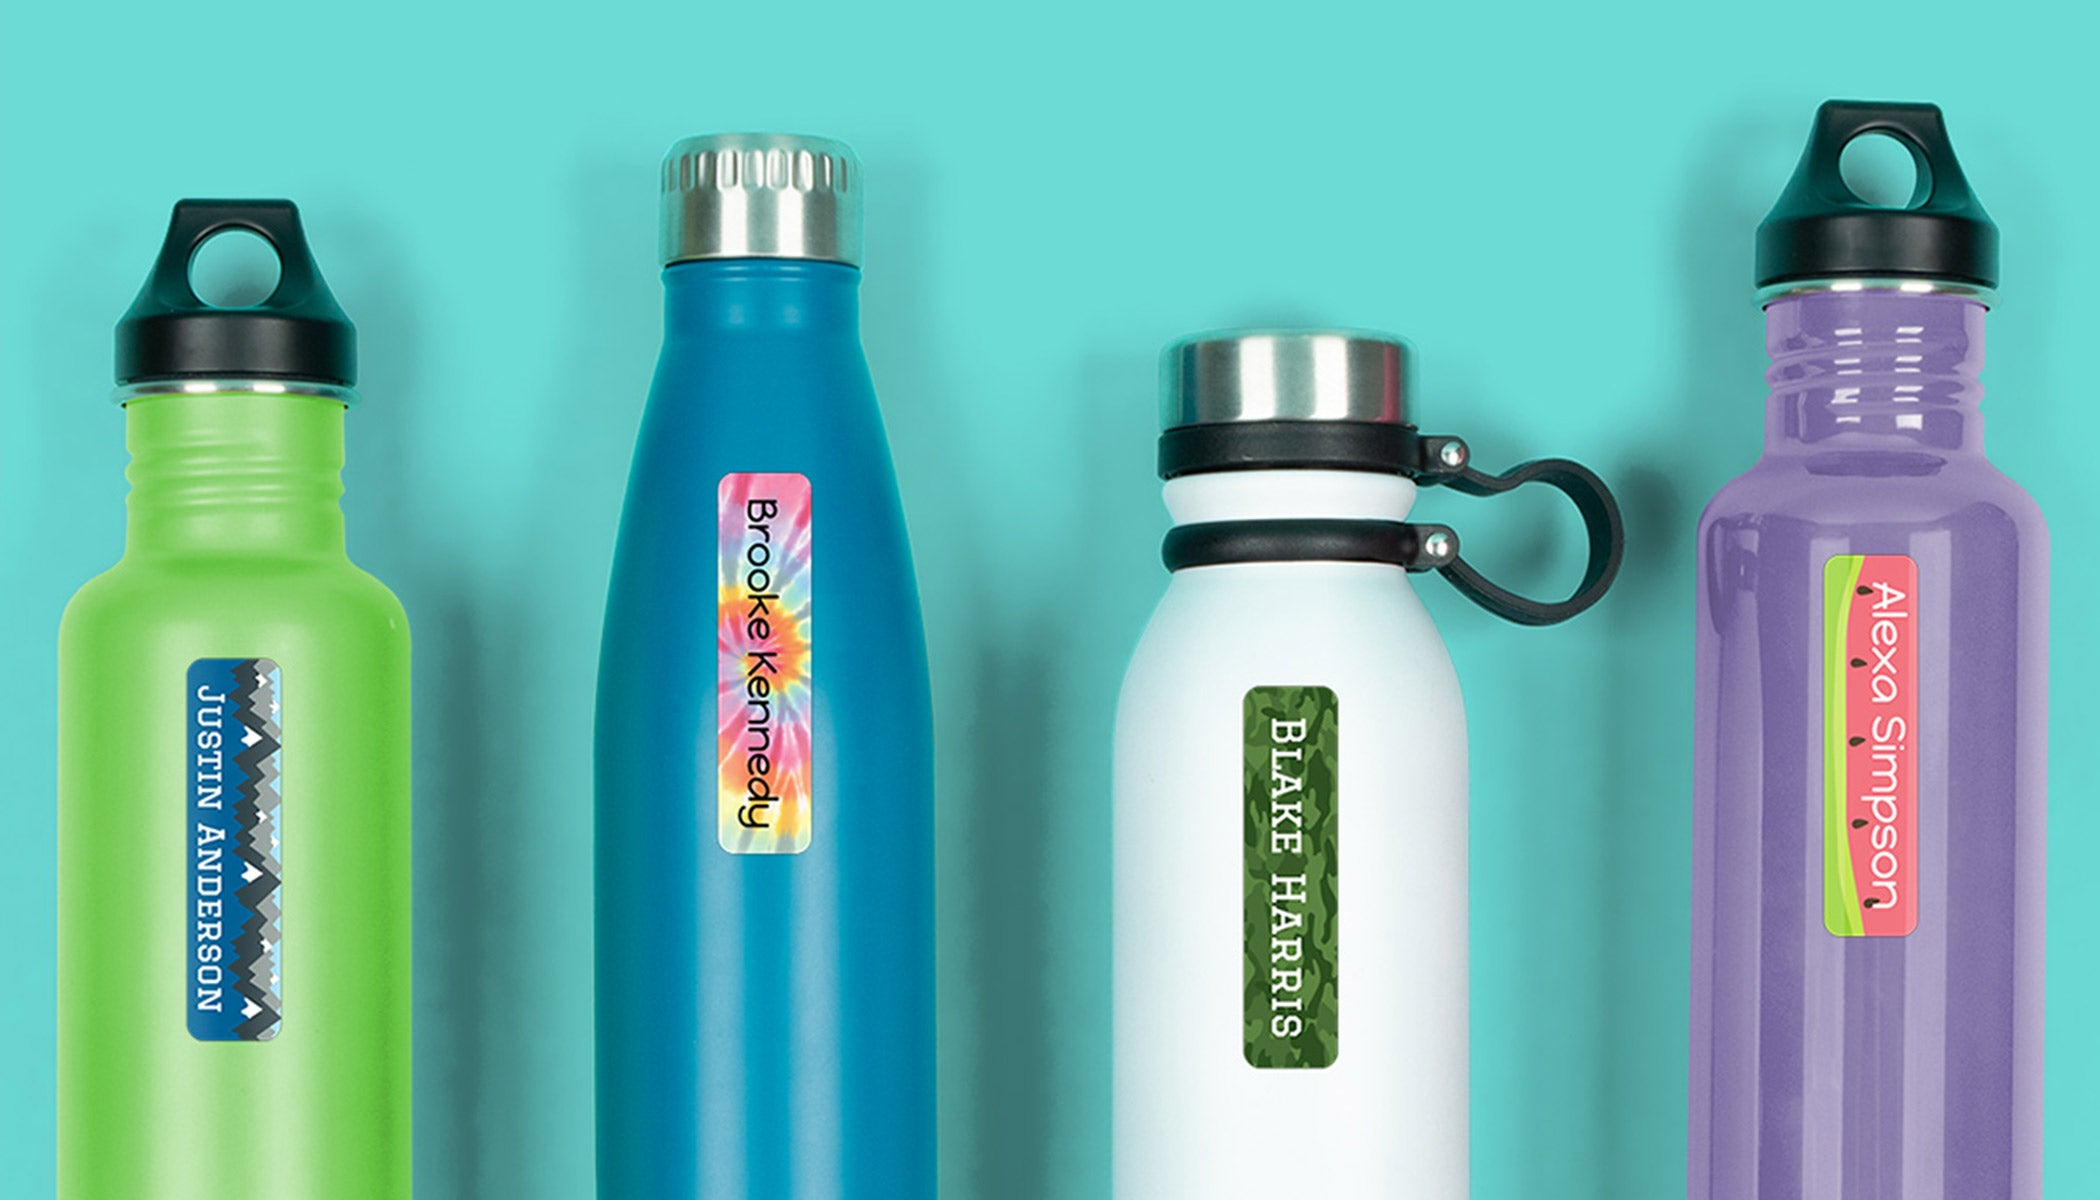 Name Bubbles helps families sending their children to summer camp by helping them stay organized.